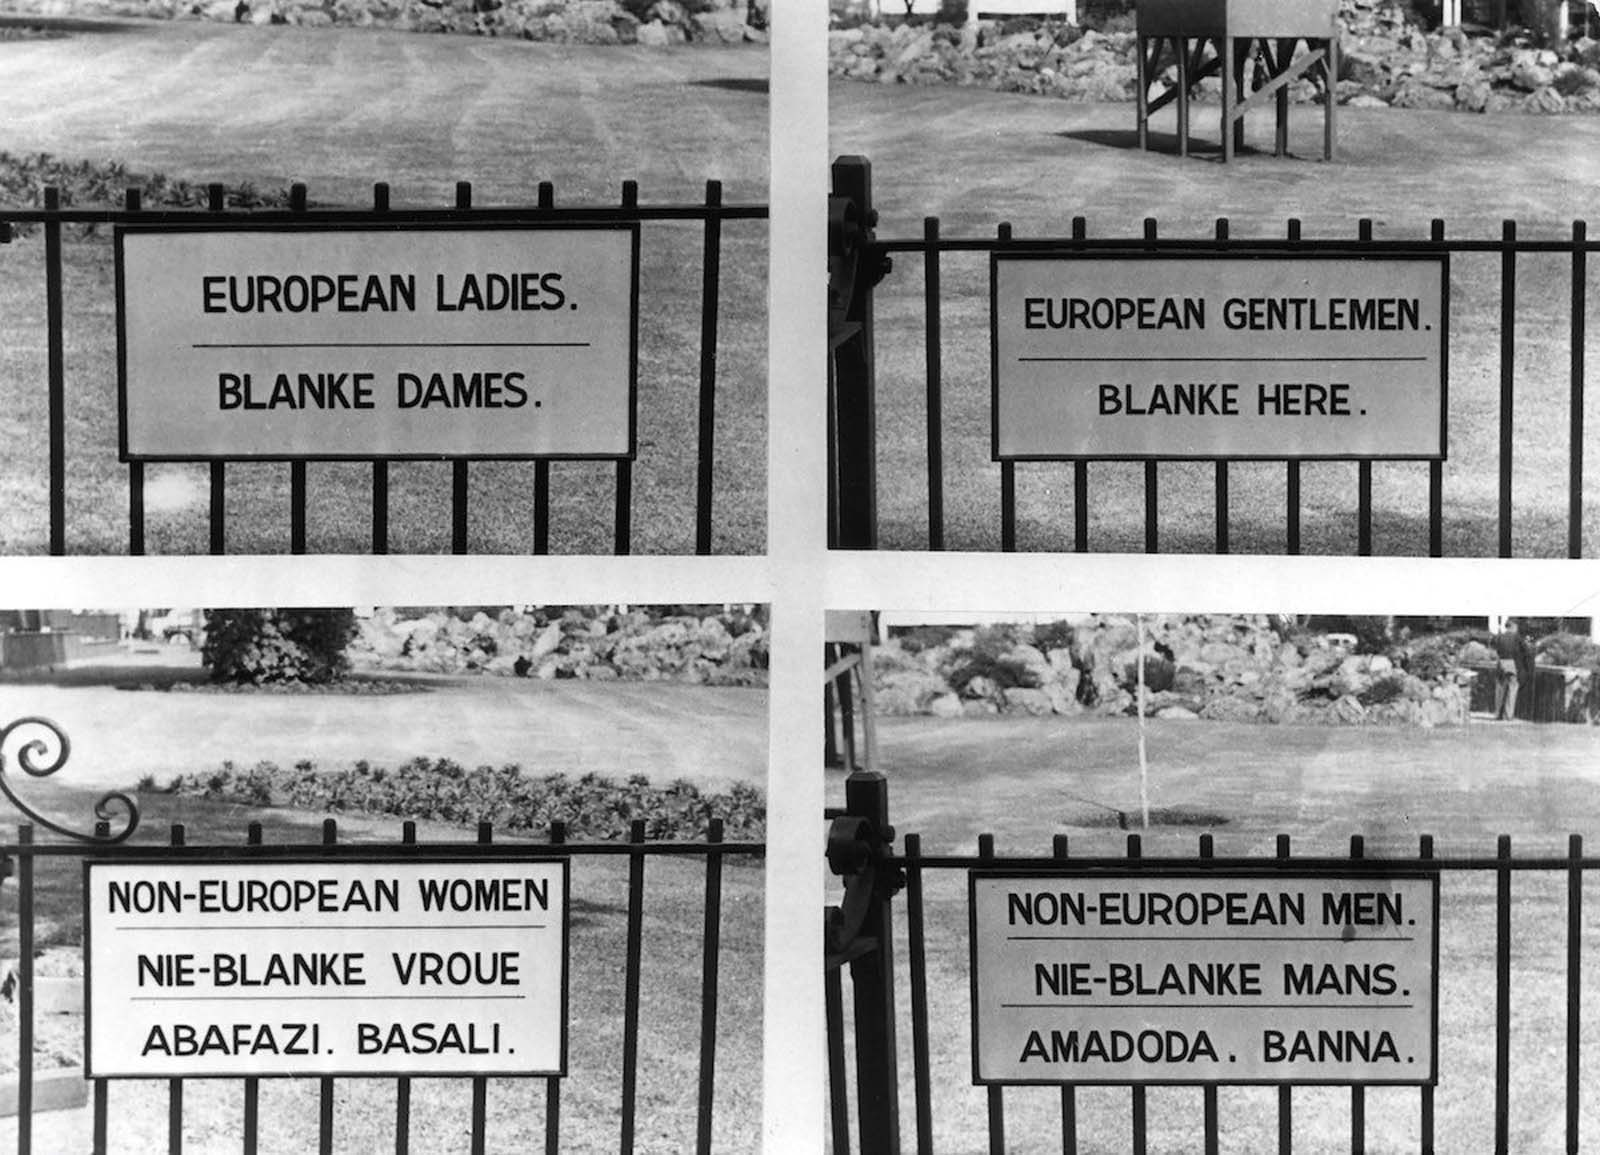 Signs in both English and Afrikaans in Johannesburg. 1957.